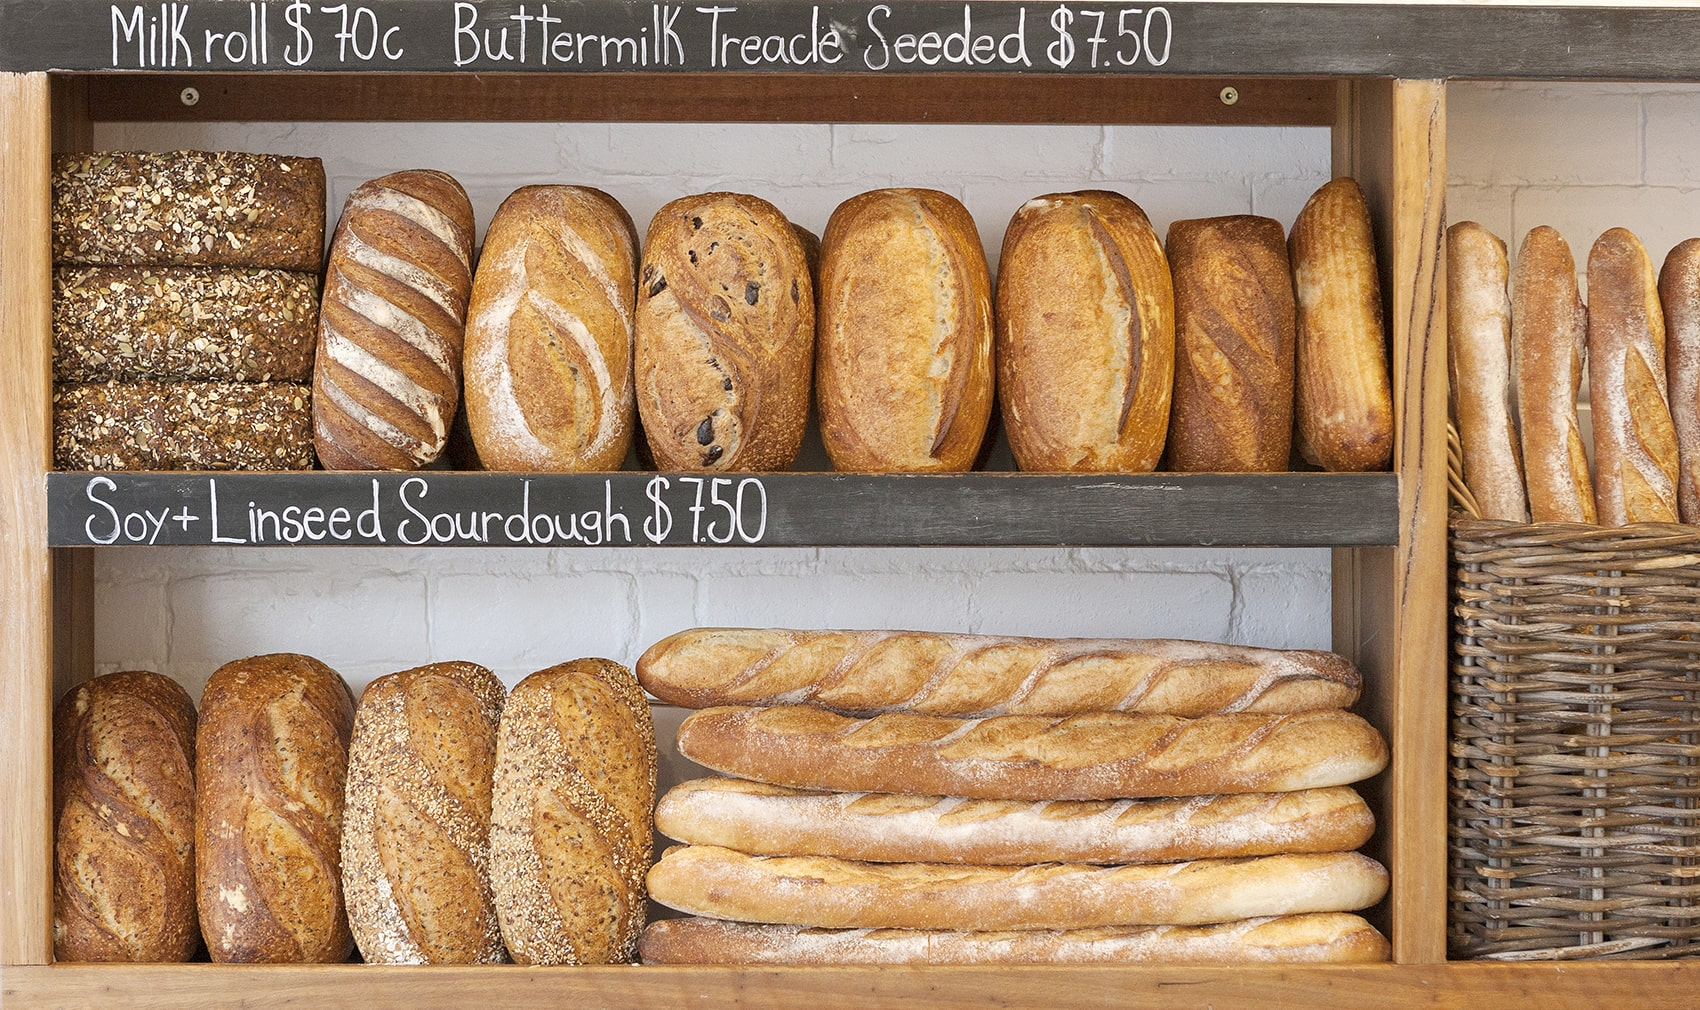 Our abundant range of artisan bread includes white sourdough, soy linseed, wholemeal, rye sourdough, buttermilk treacle, baguettes, fruit, cheddar cumin, charcoals buns and milk rolls